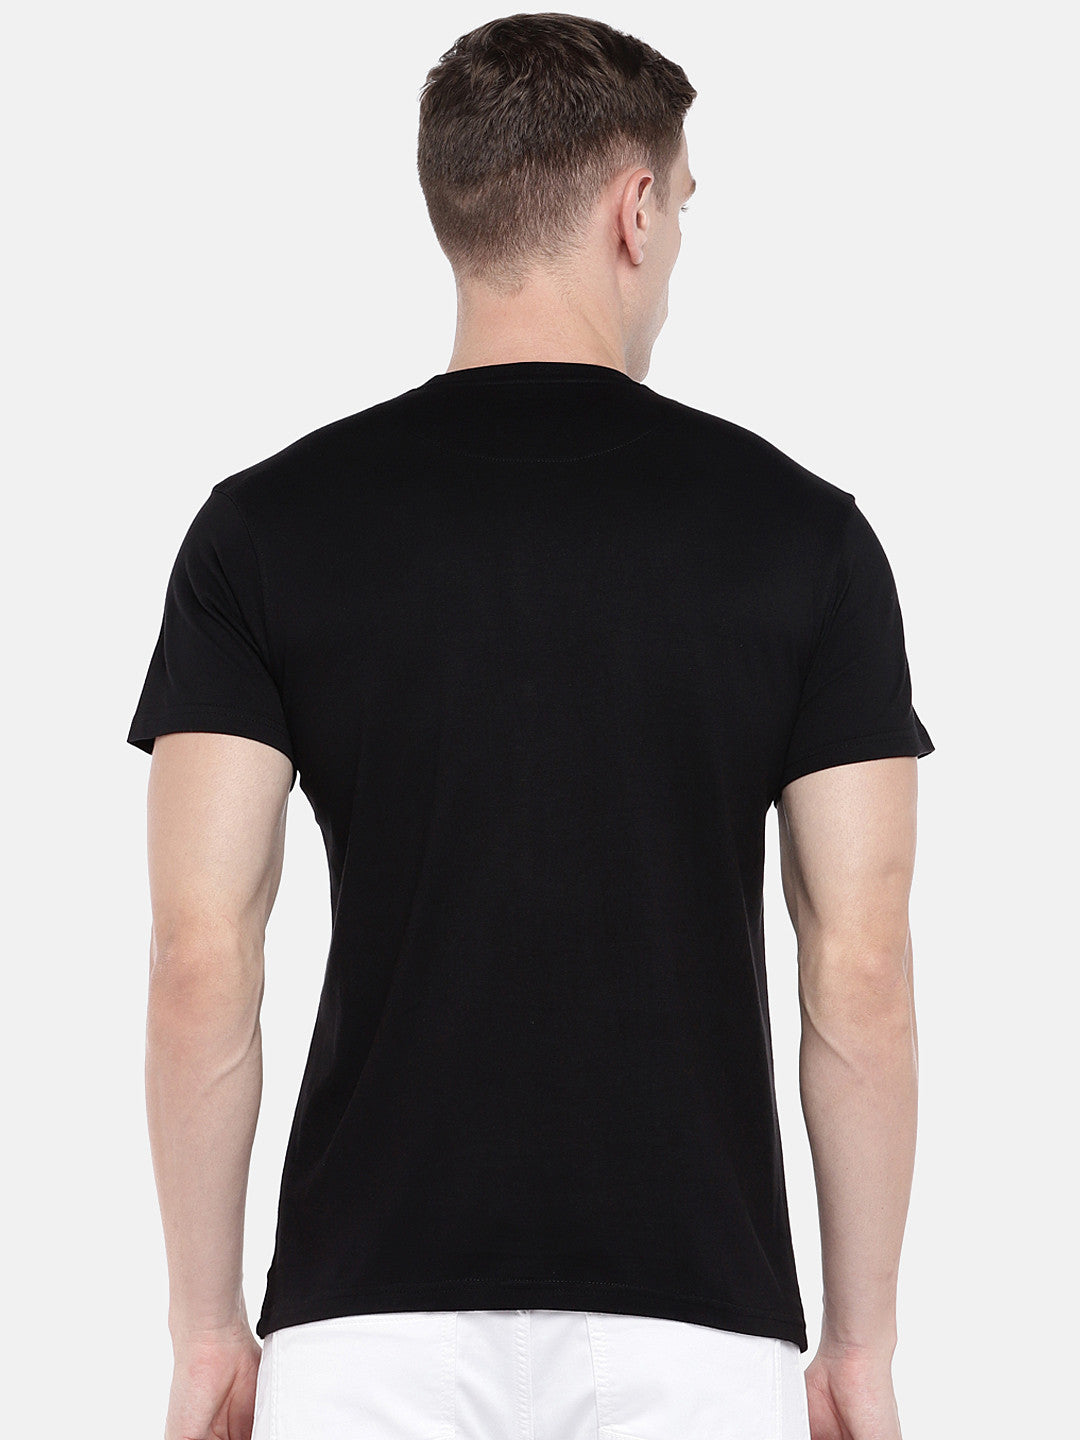 Black Printed Round Neck T-shirt-3